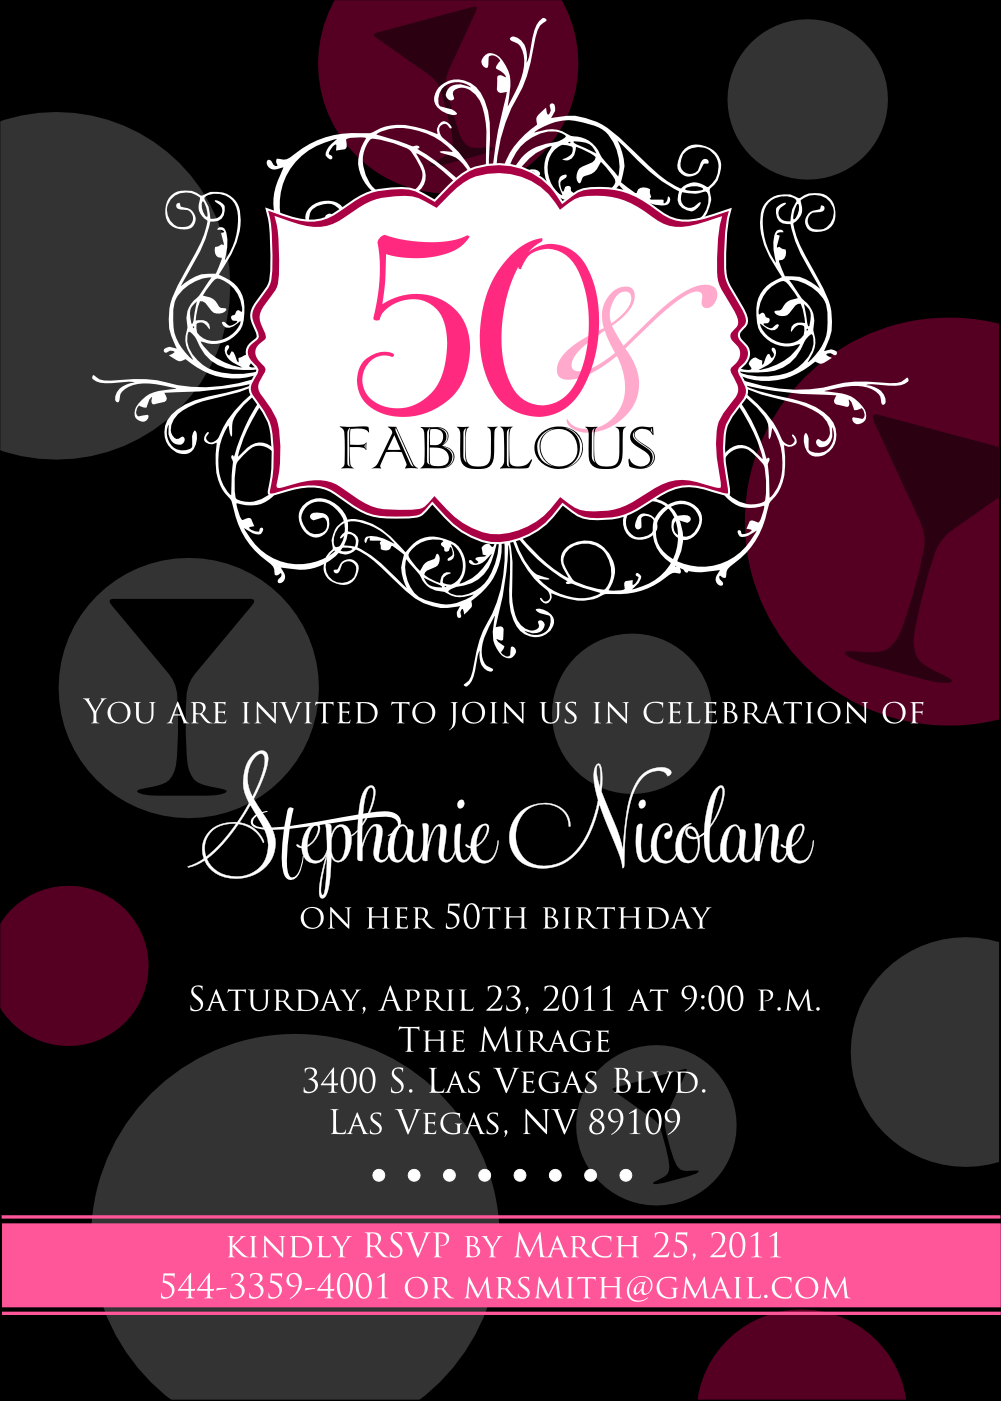 50th birthday fabulous party invitations madonna invitation sarah templates elegant crazy